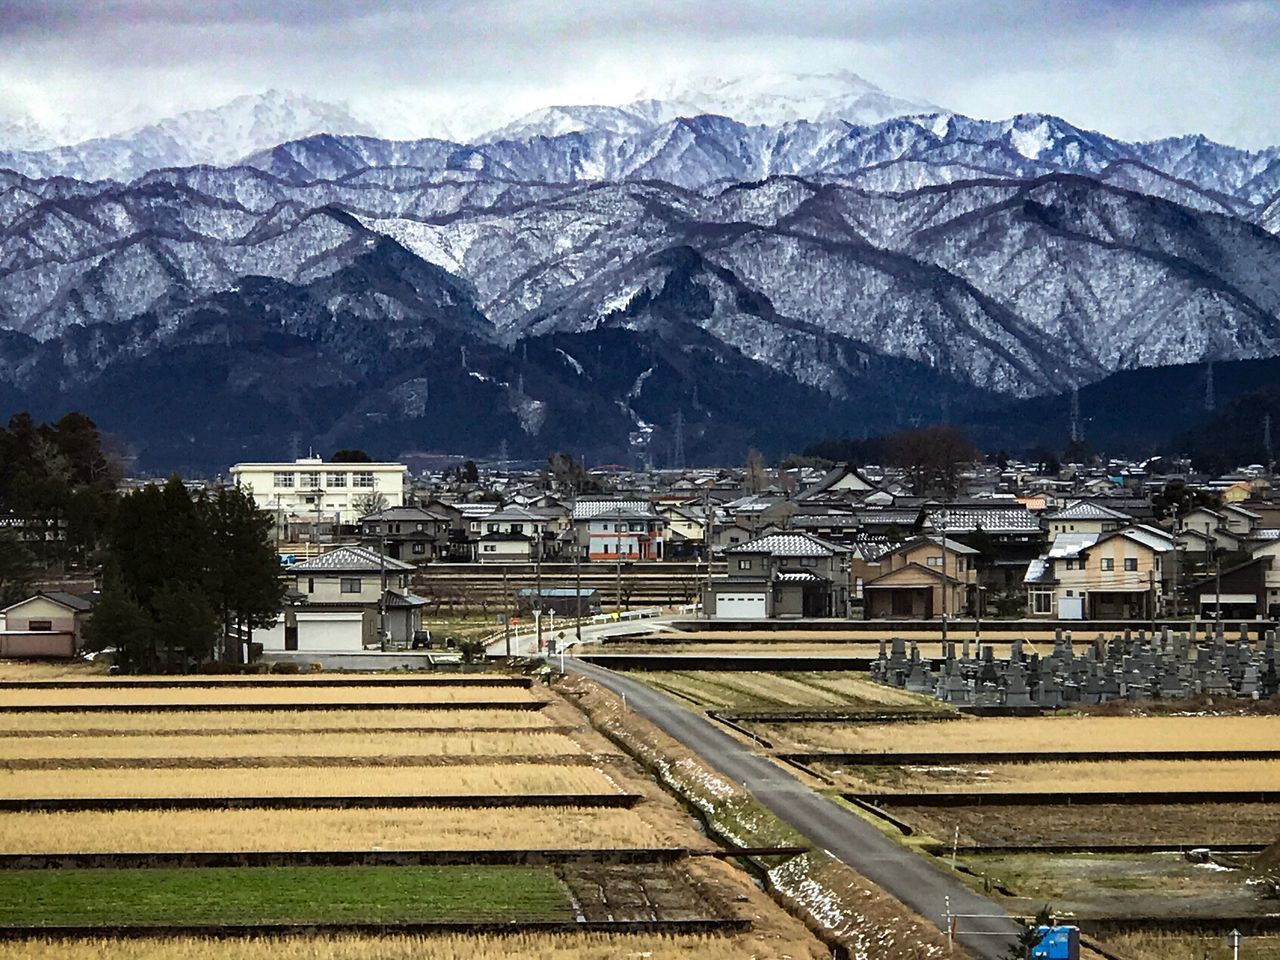 Building Exterior Mountain Built Structure Architecture Mountain Range Outdoors Day No People Sky Nature Tree Japan Style Toyama Focus On Foreground Japan Transparent